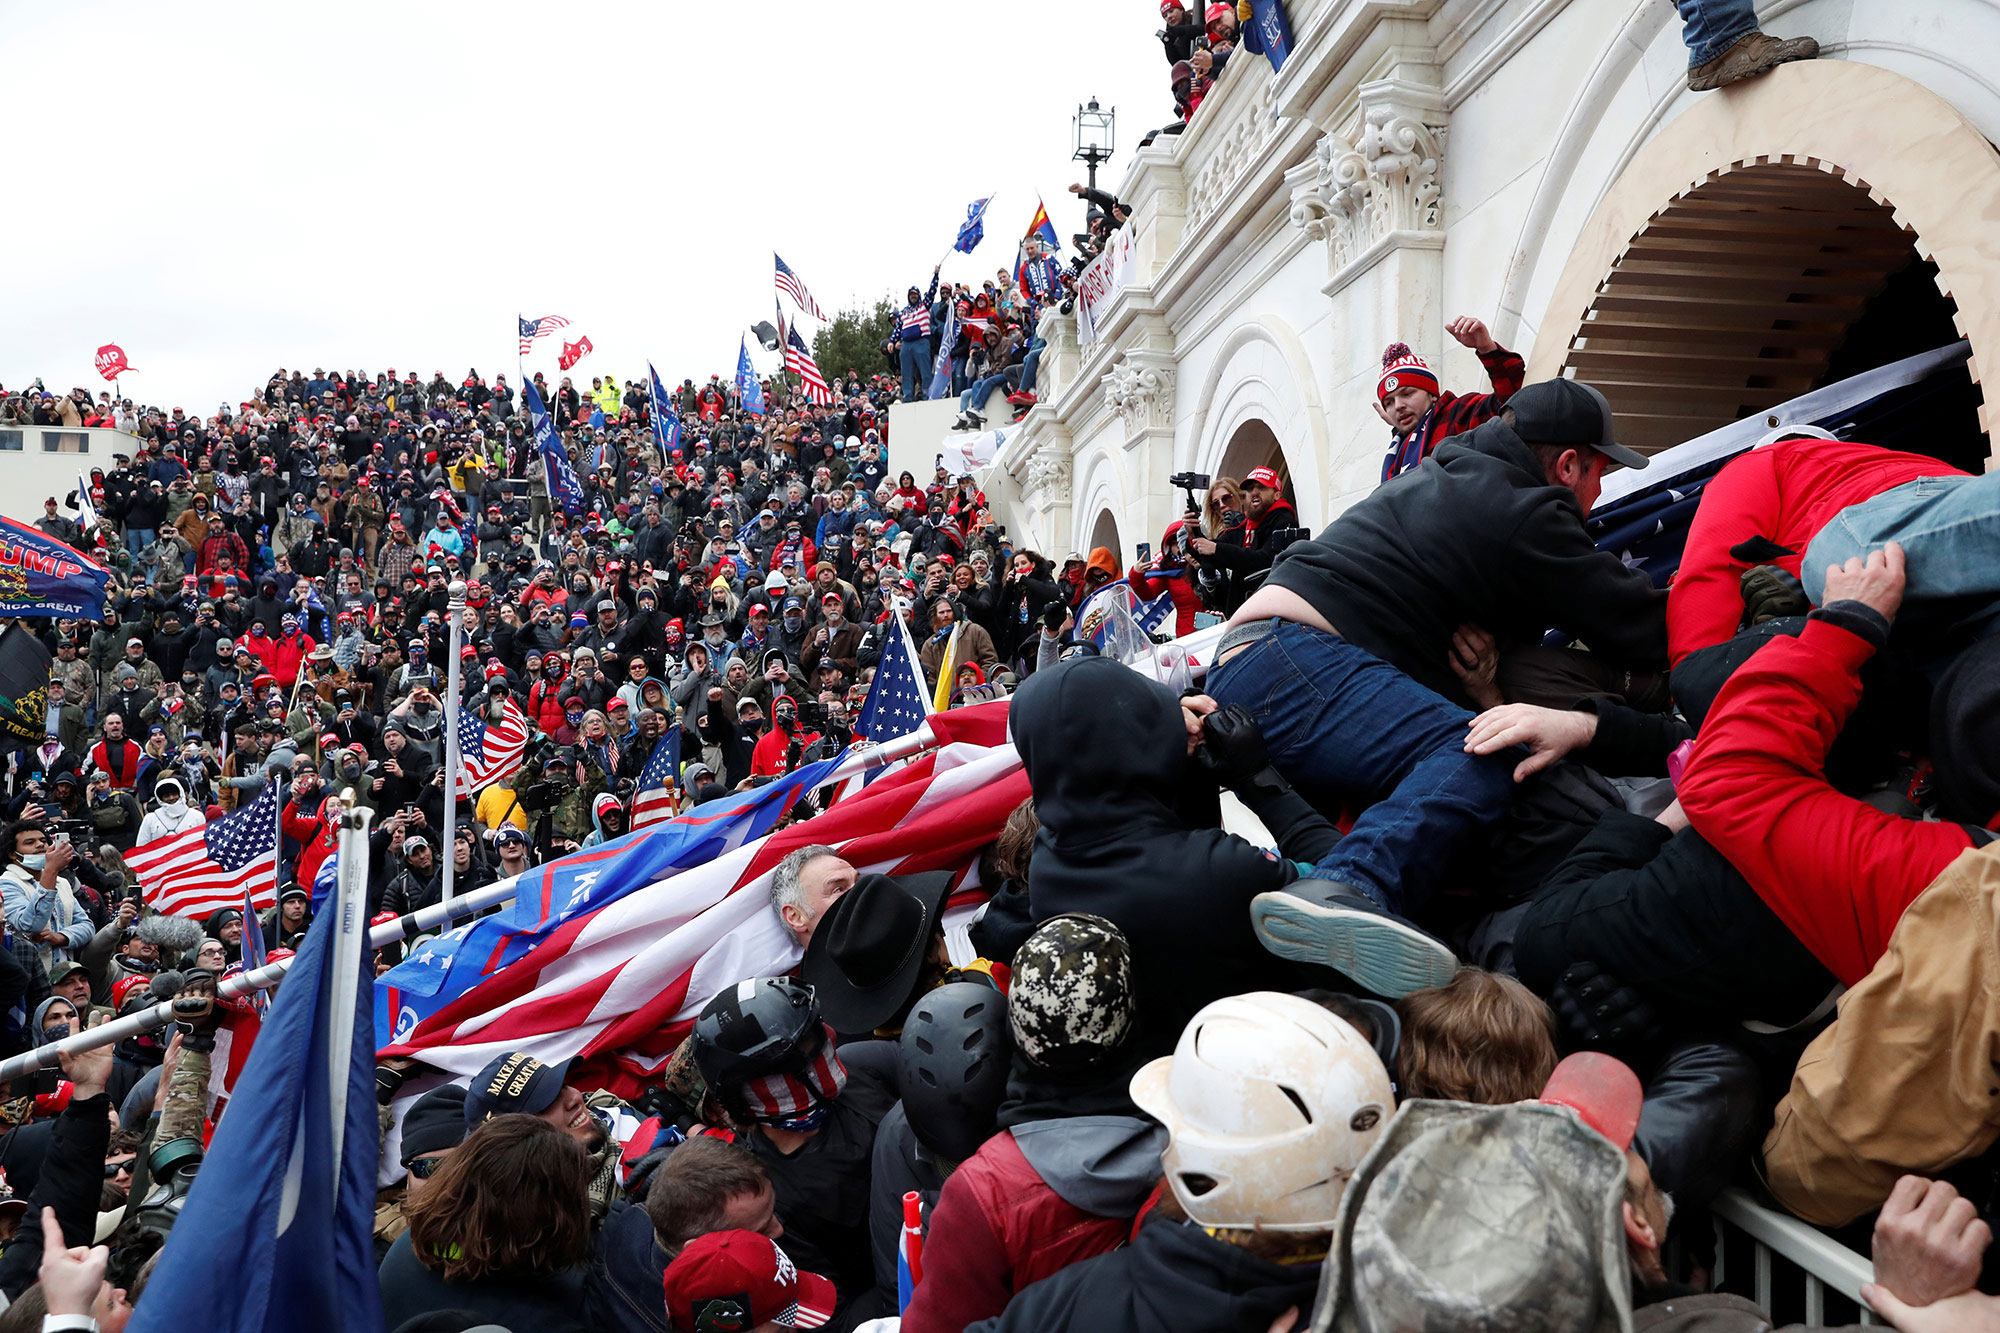 Pro-Donald Trump rioters storm the Capitol during clashes with police on January 6.